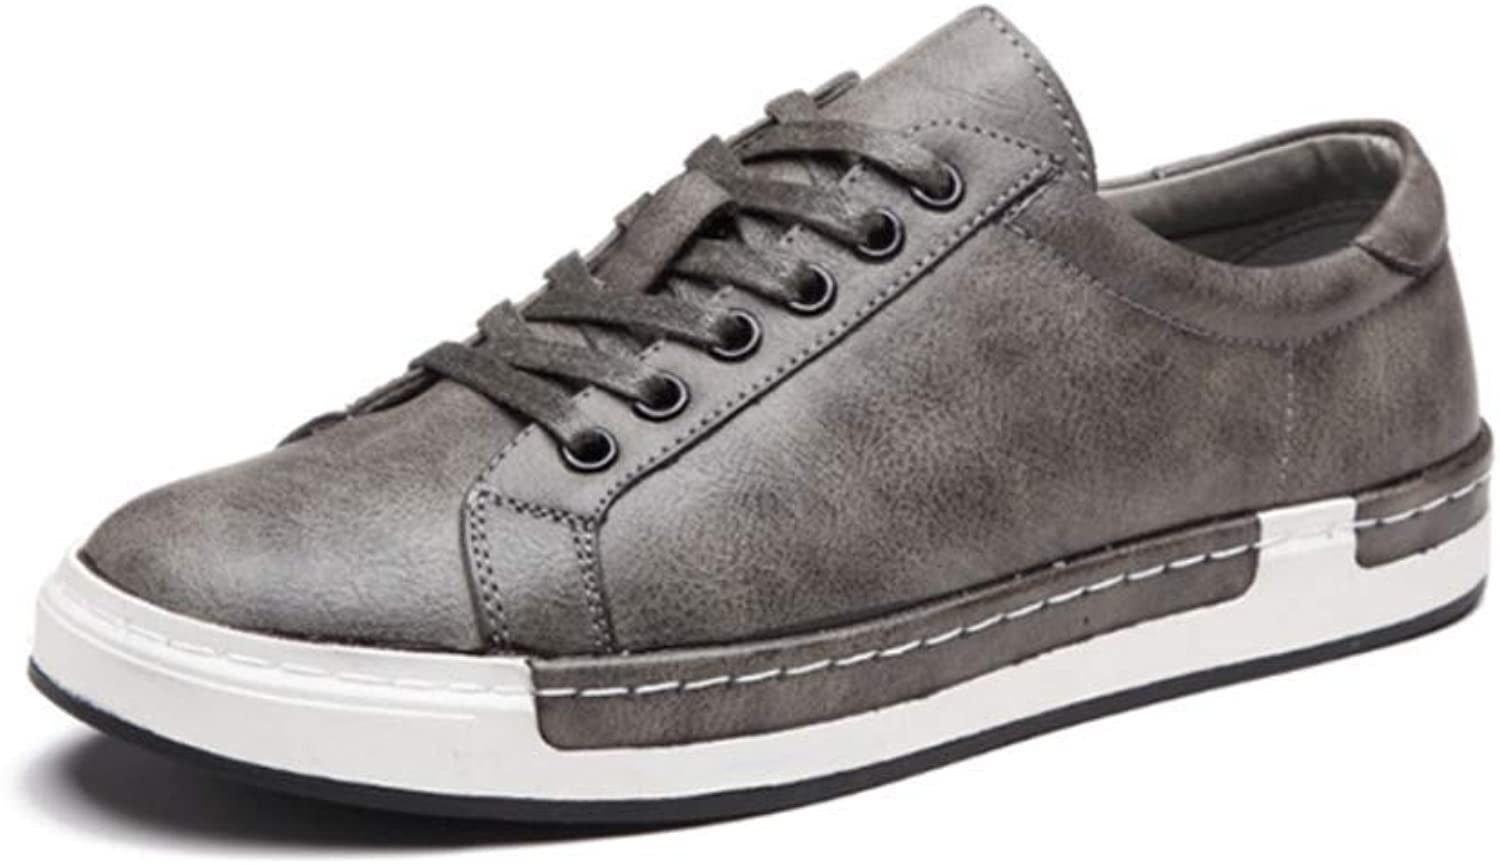 LYZGF Men Youth Seasons Flat Casual Fashion Round Head Lace Leather shoes